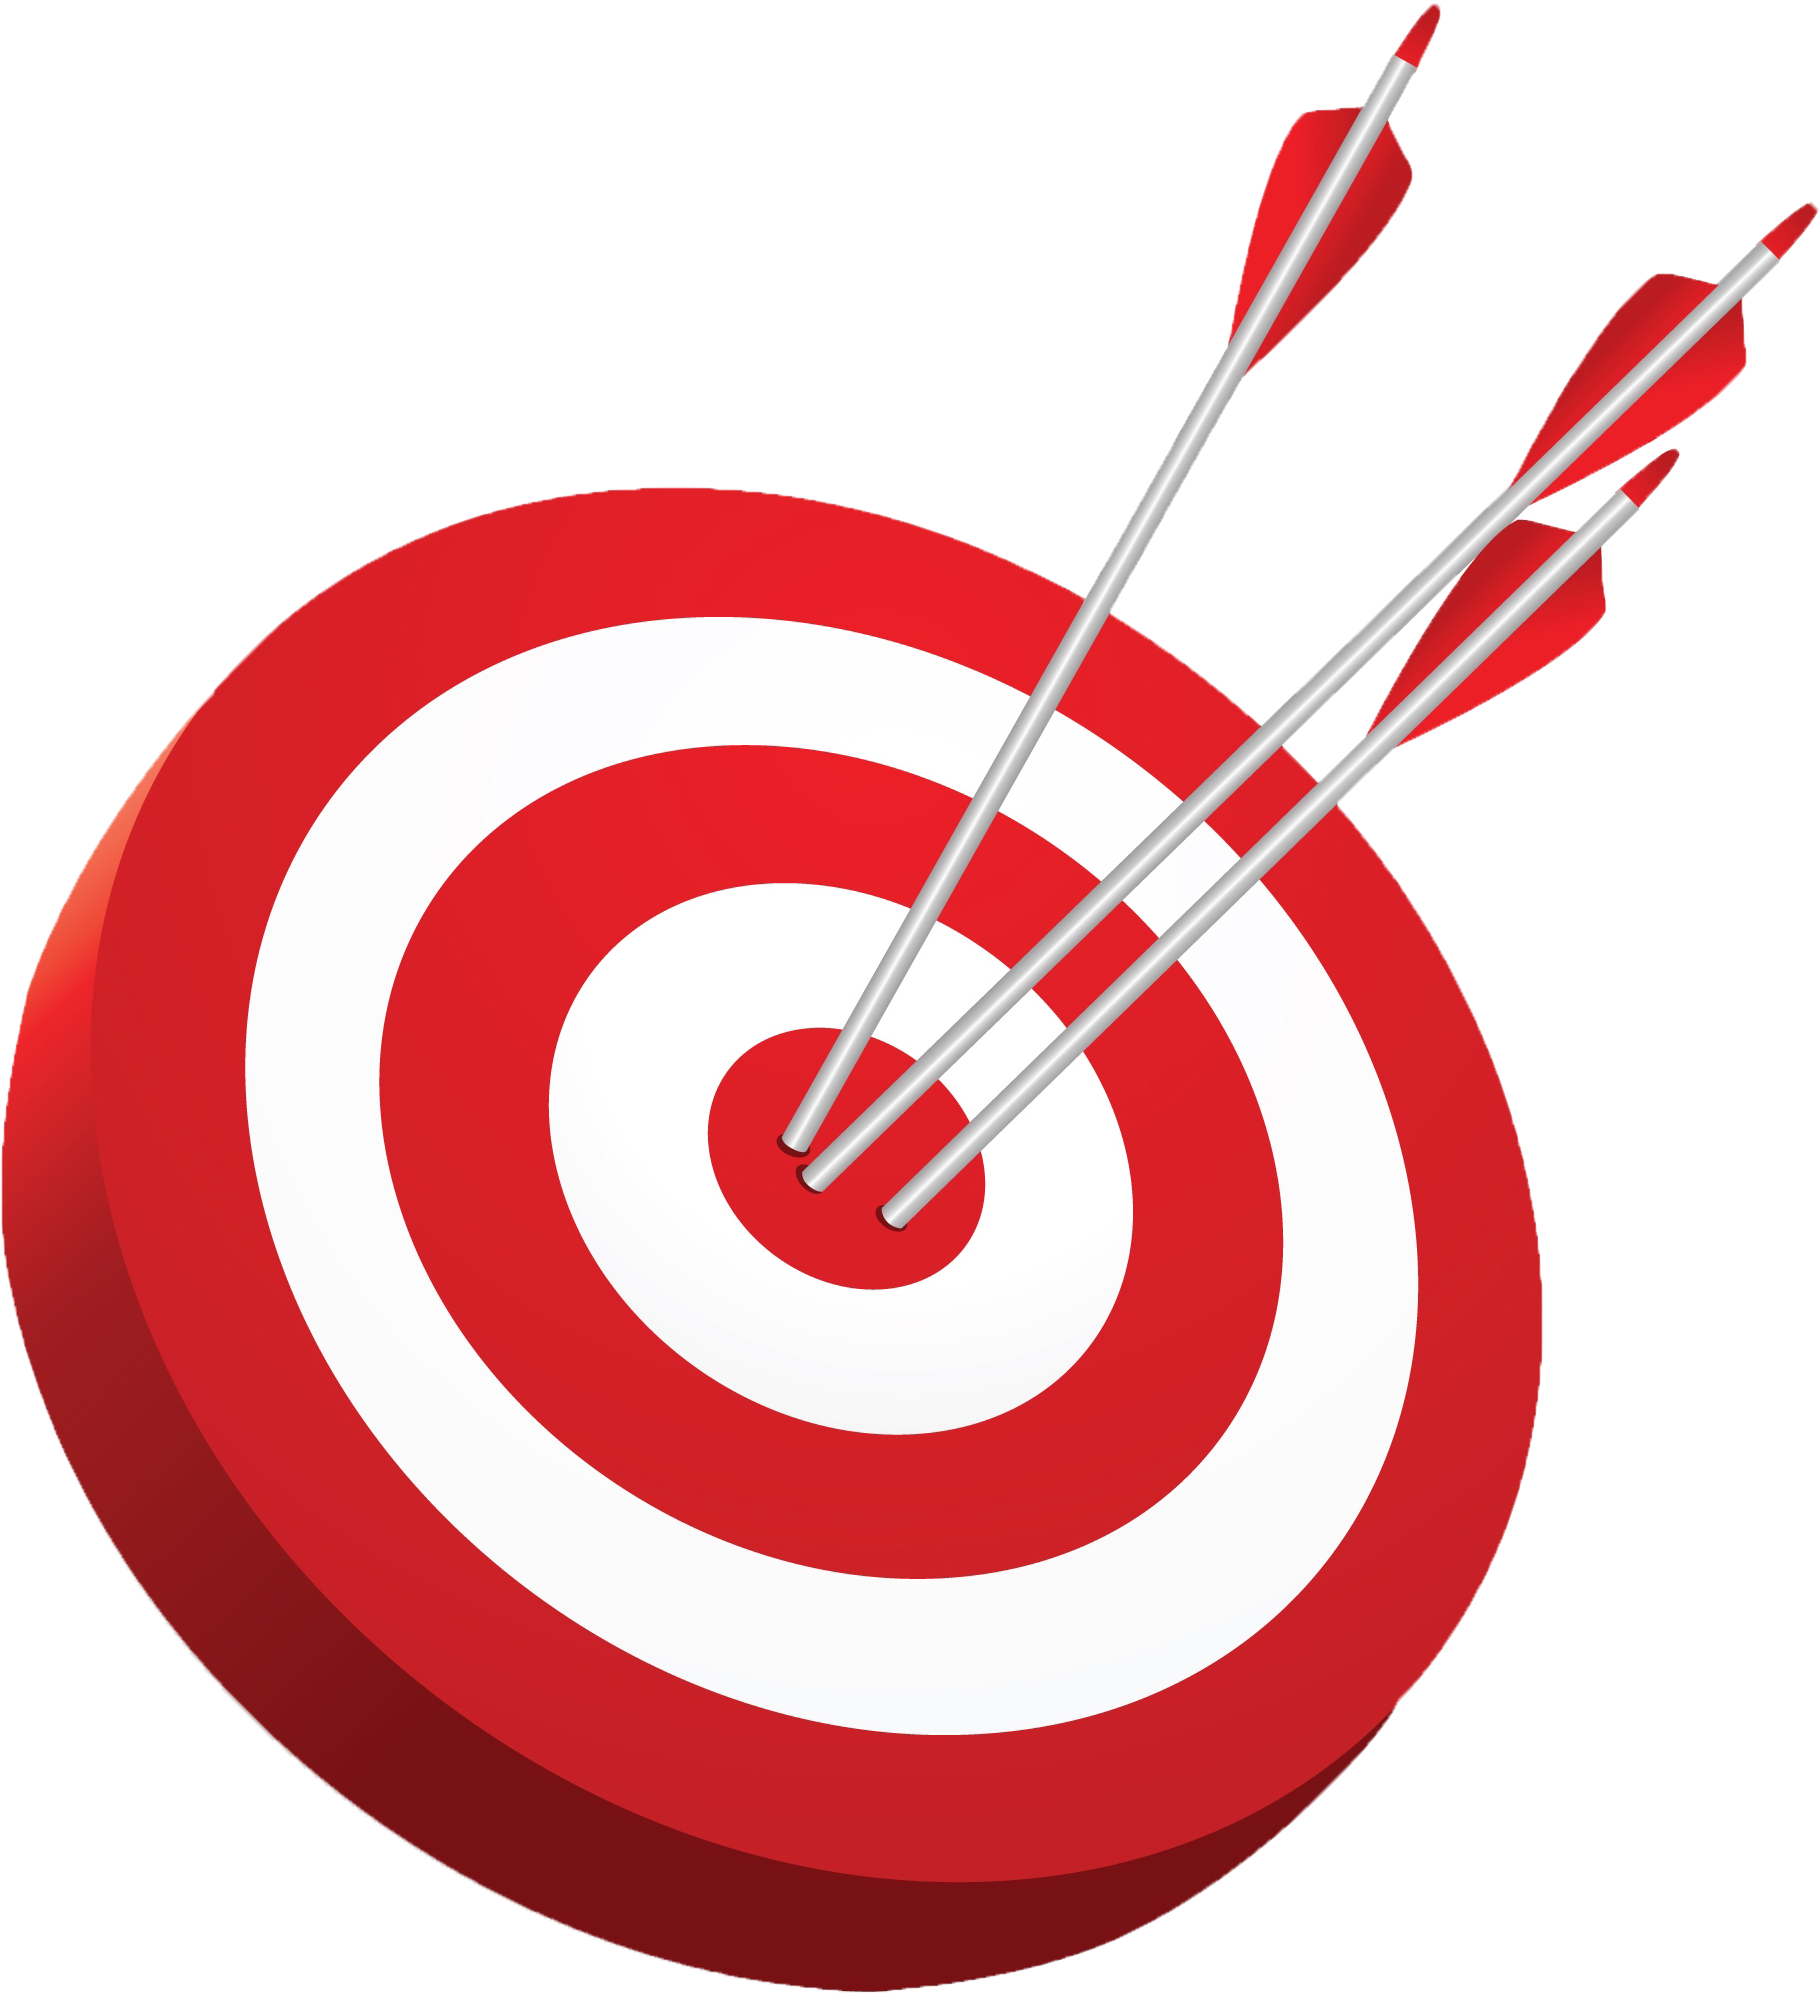 Corporation Bullseye Archery Clip Art Focus Transprent.